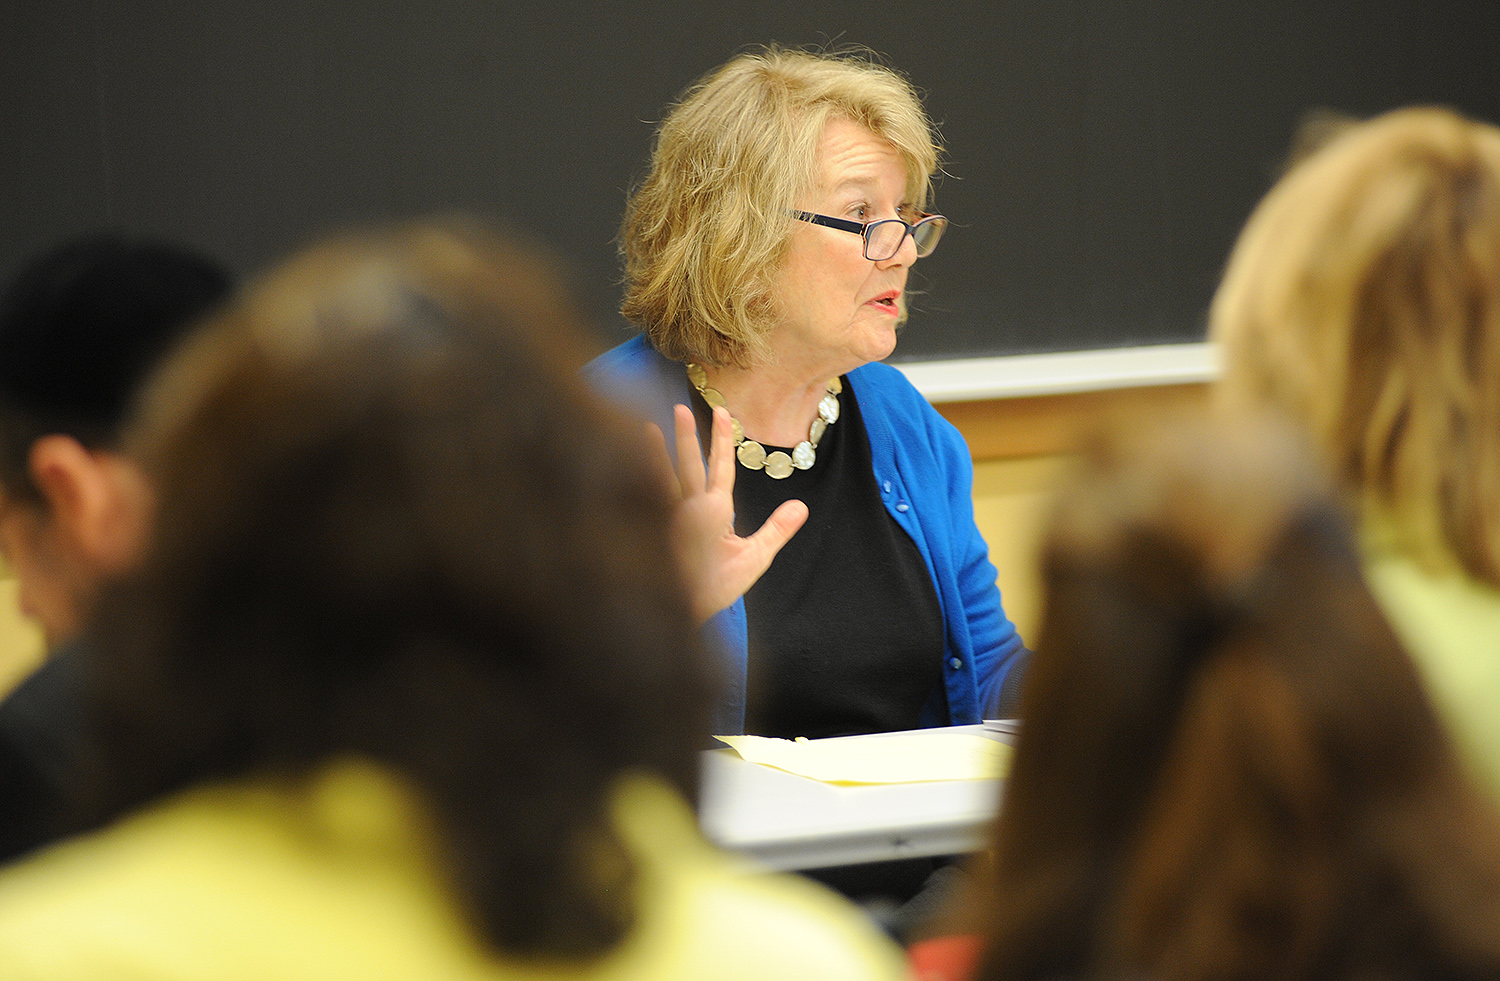 Guest faculty member Lis Harris, a journalist and author, spoke about literary journalism and memoir. Harris was a staff worker on The New Yorker for 25 years, and her work has appeared in The New York Times, The World Policy Journal, and the Wilson Quarterly.